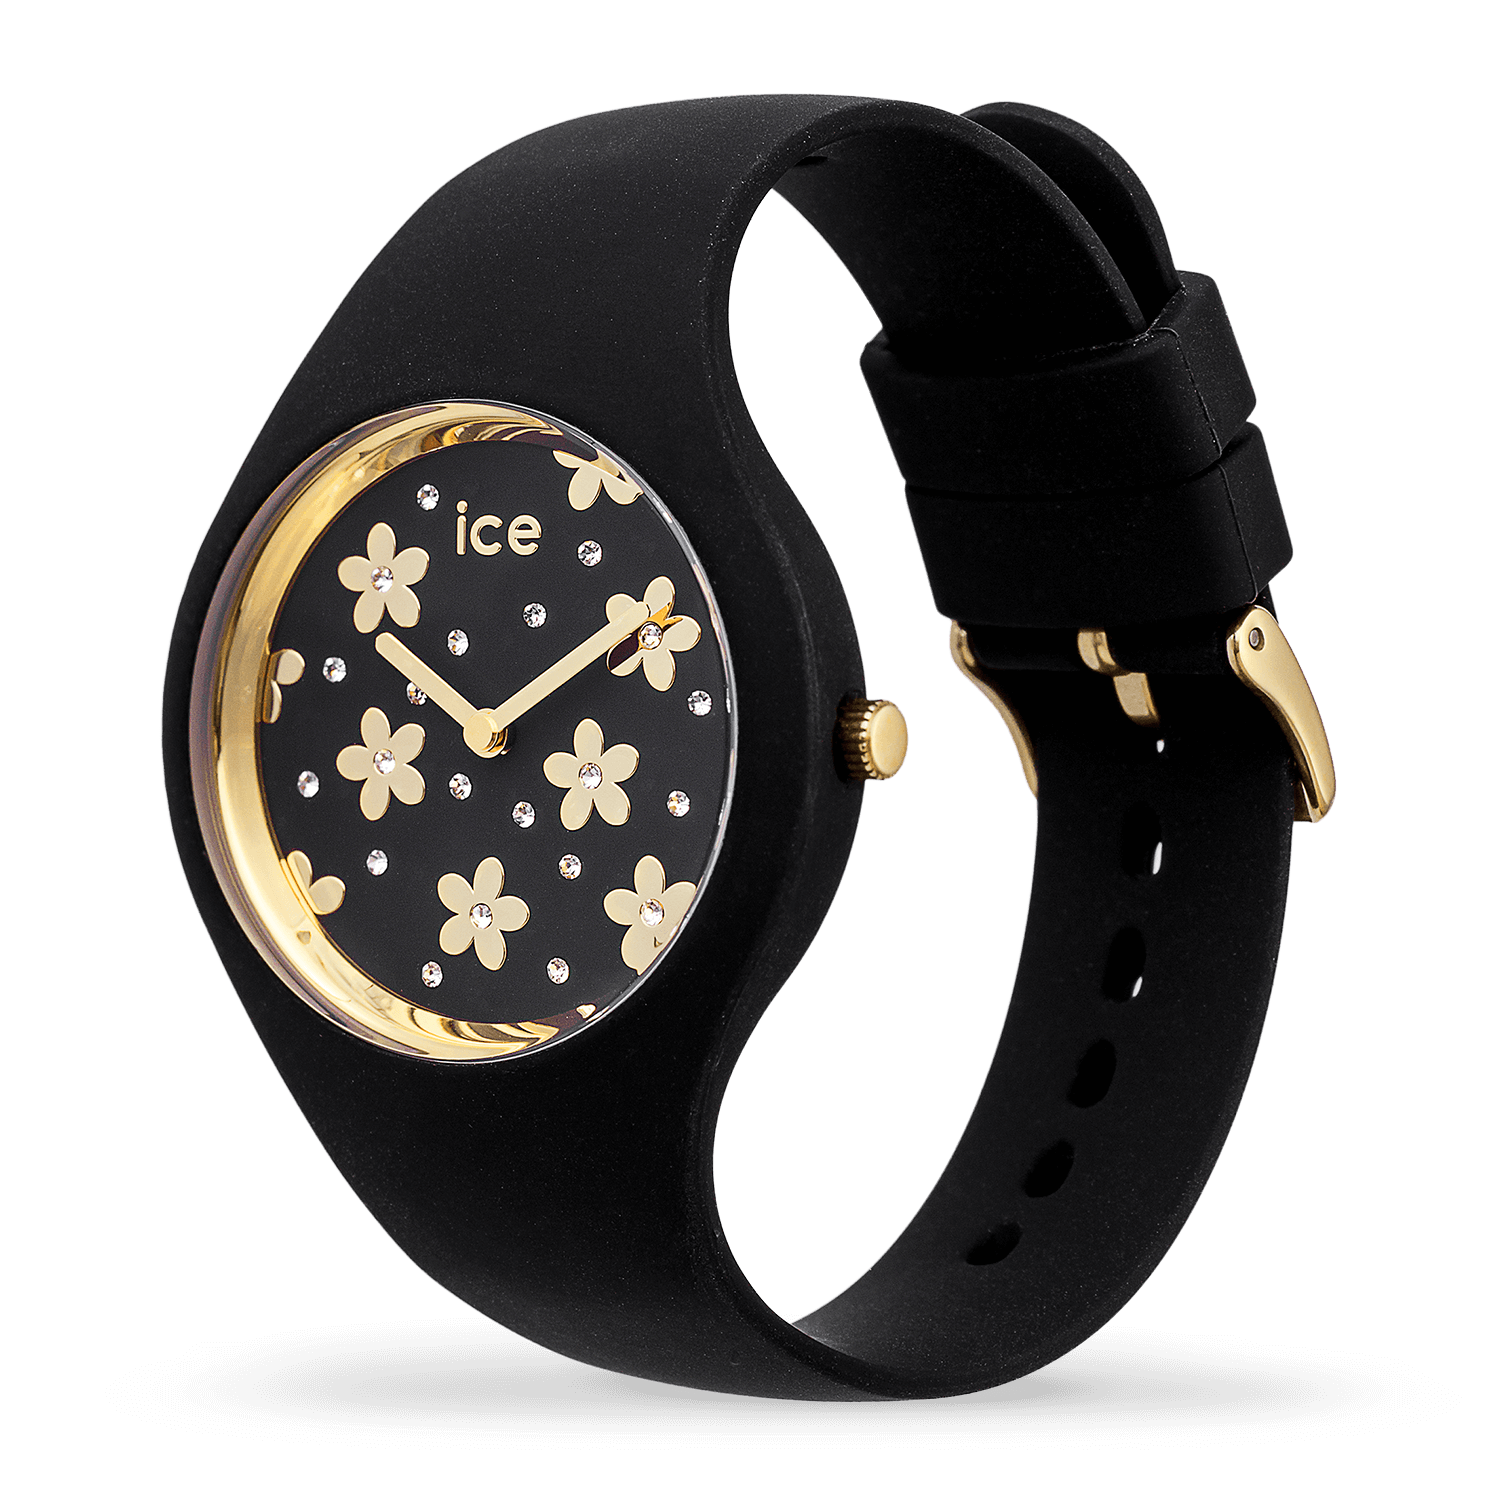 Ice Watch ICE flowerPrecious black Small